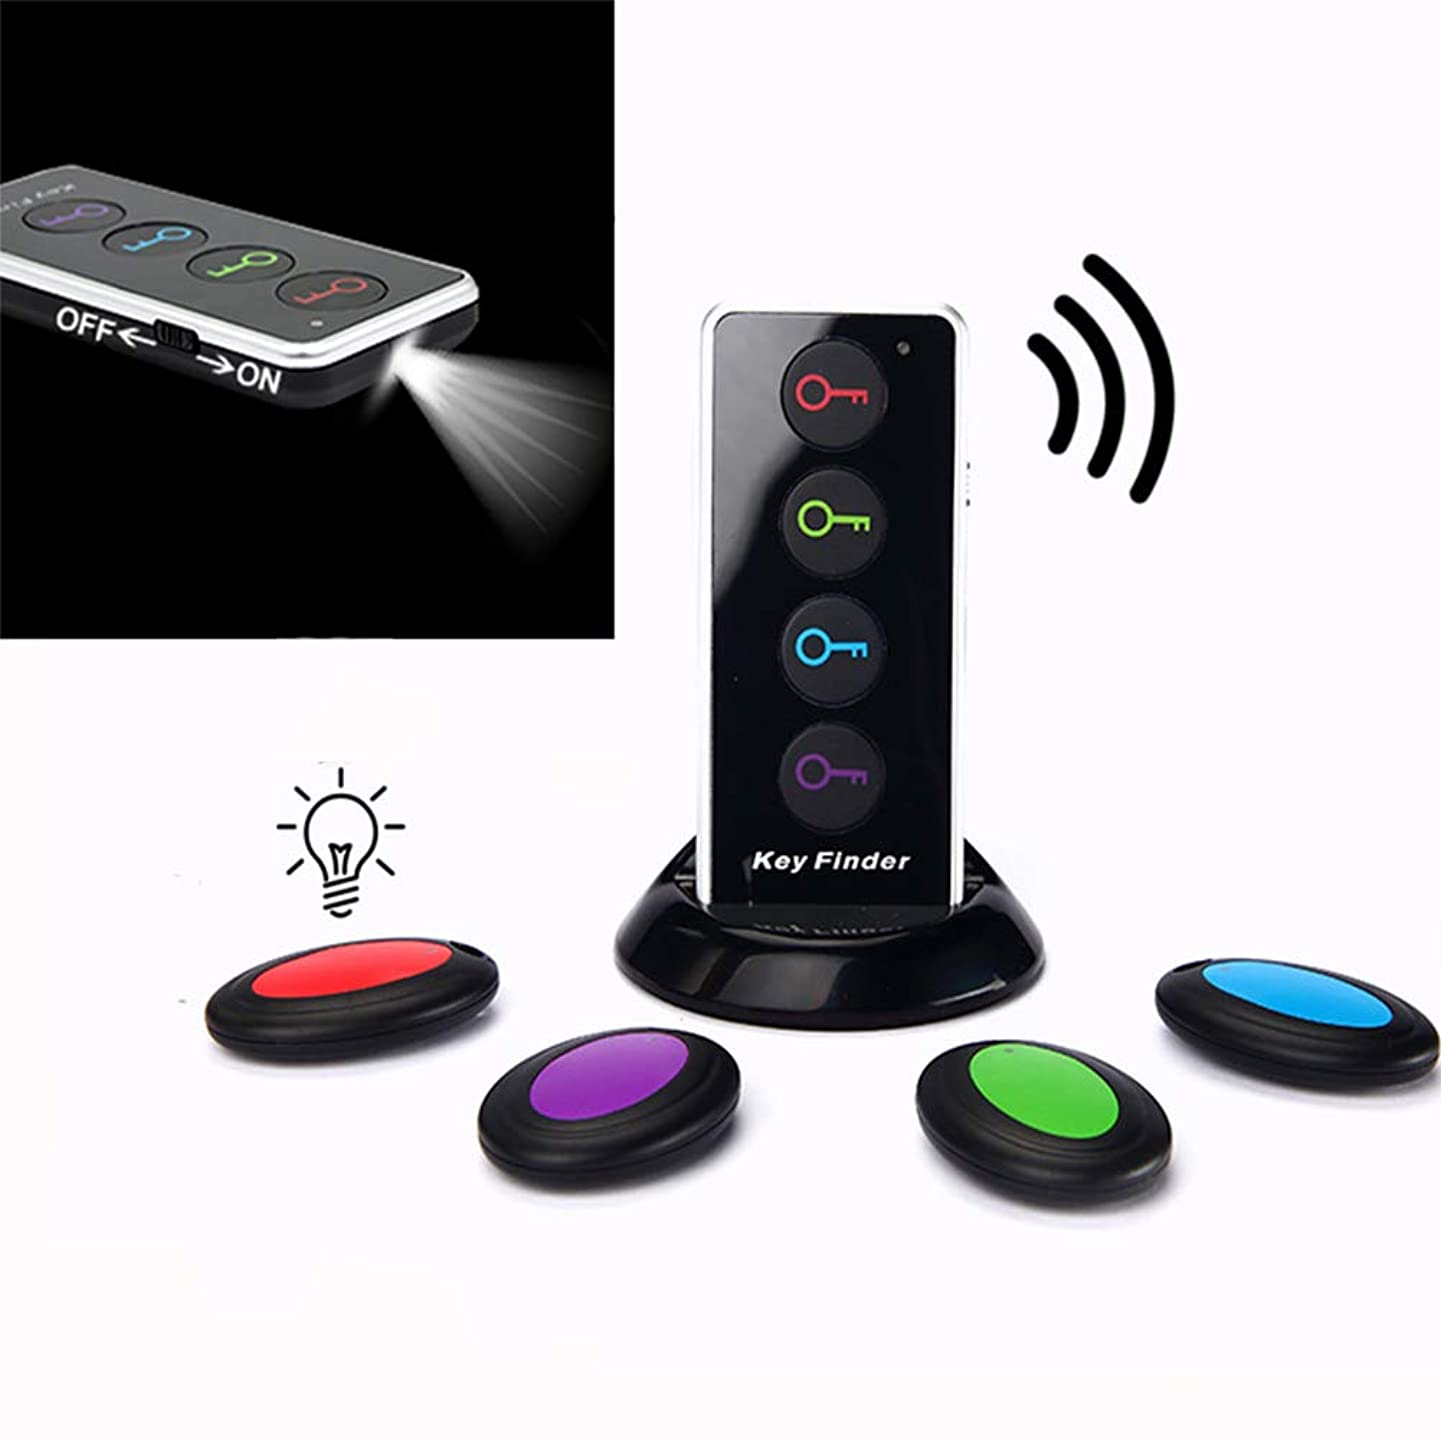 Abnaok Wireless Key Finder, Esky Wireless RF Item Locator Item Tracker Support Remote Control, with LED Flashlight and Base Support, Remote Control with 4 Receivers